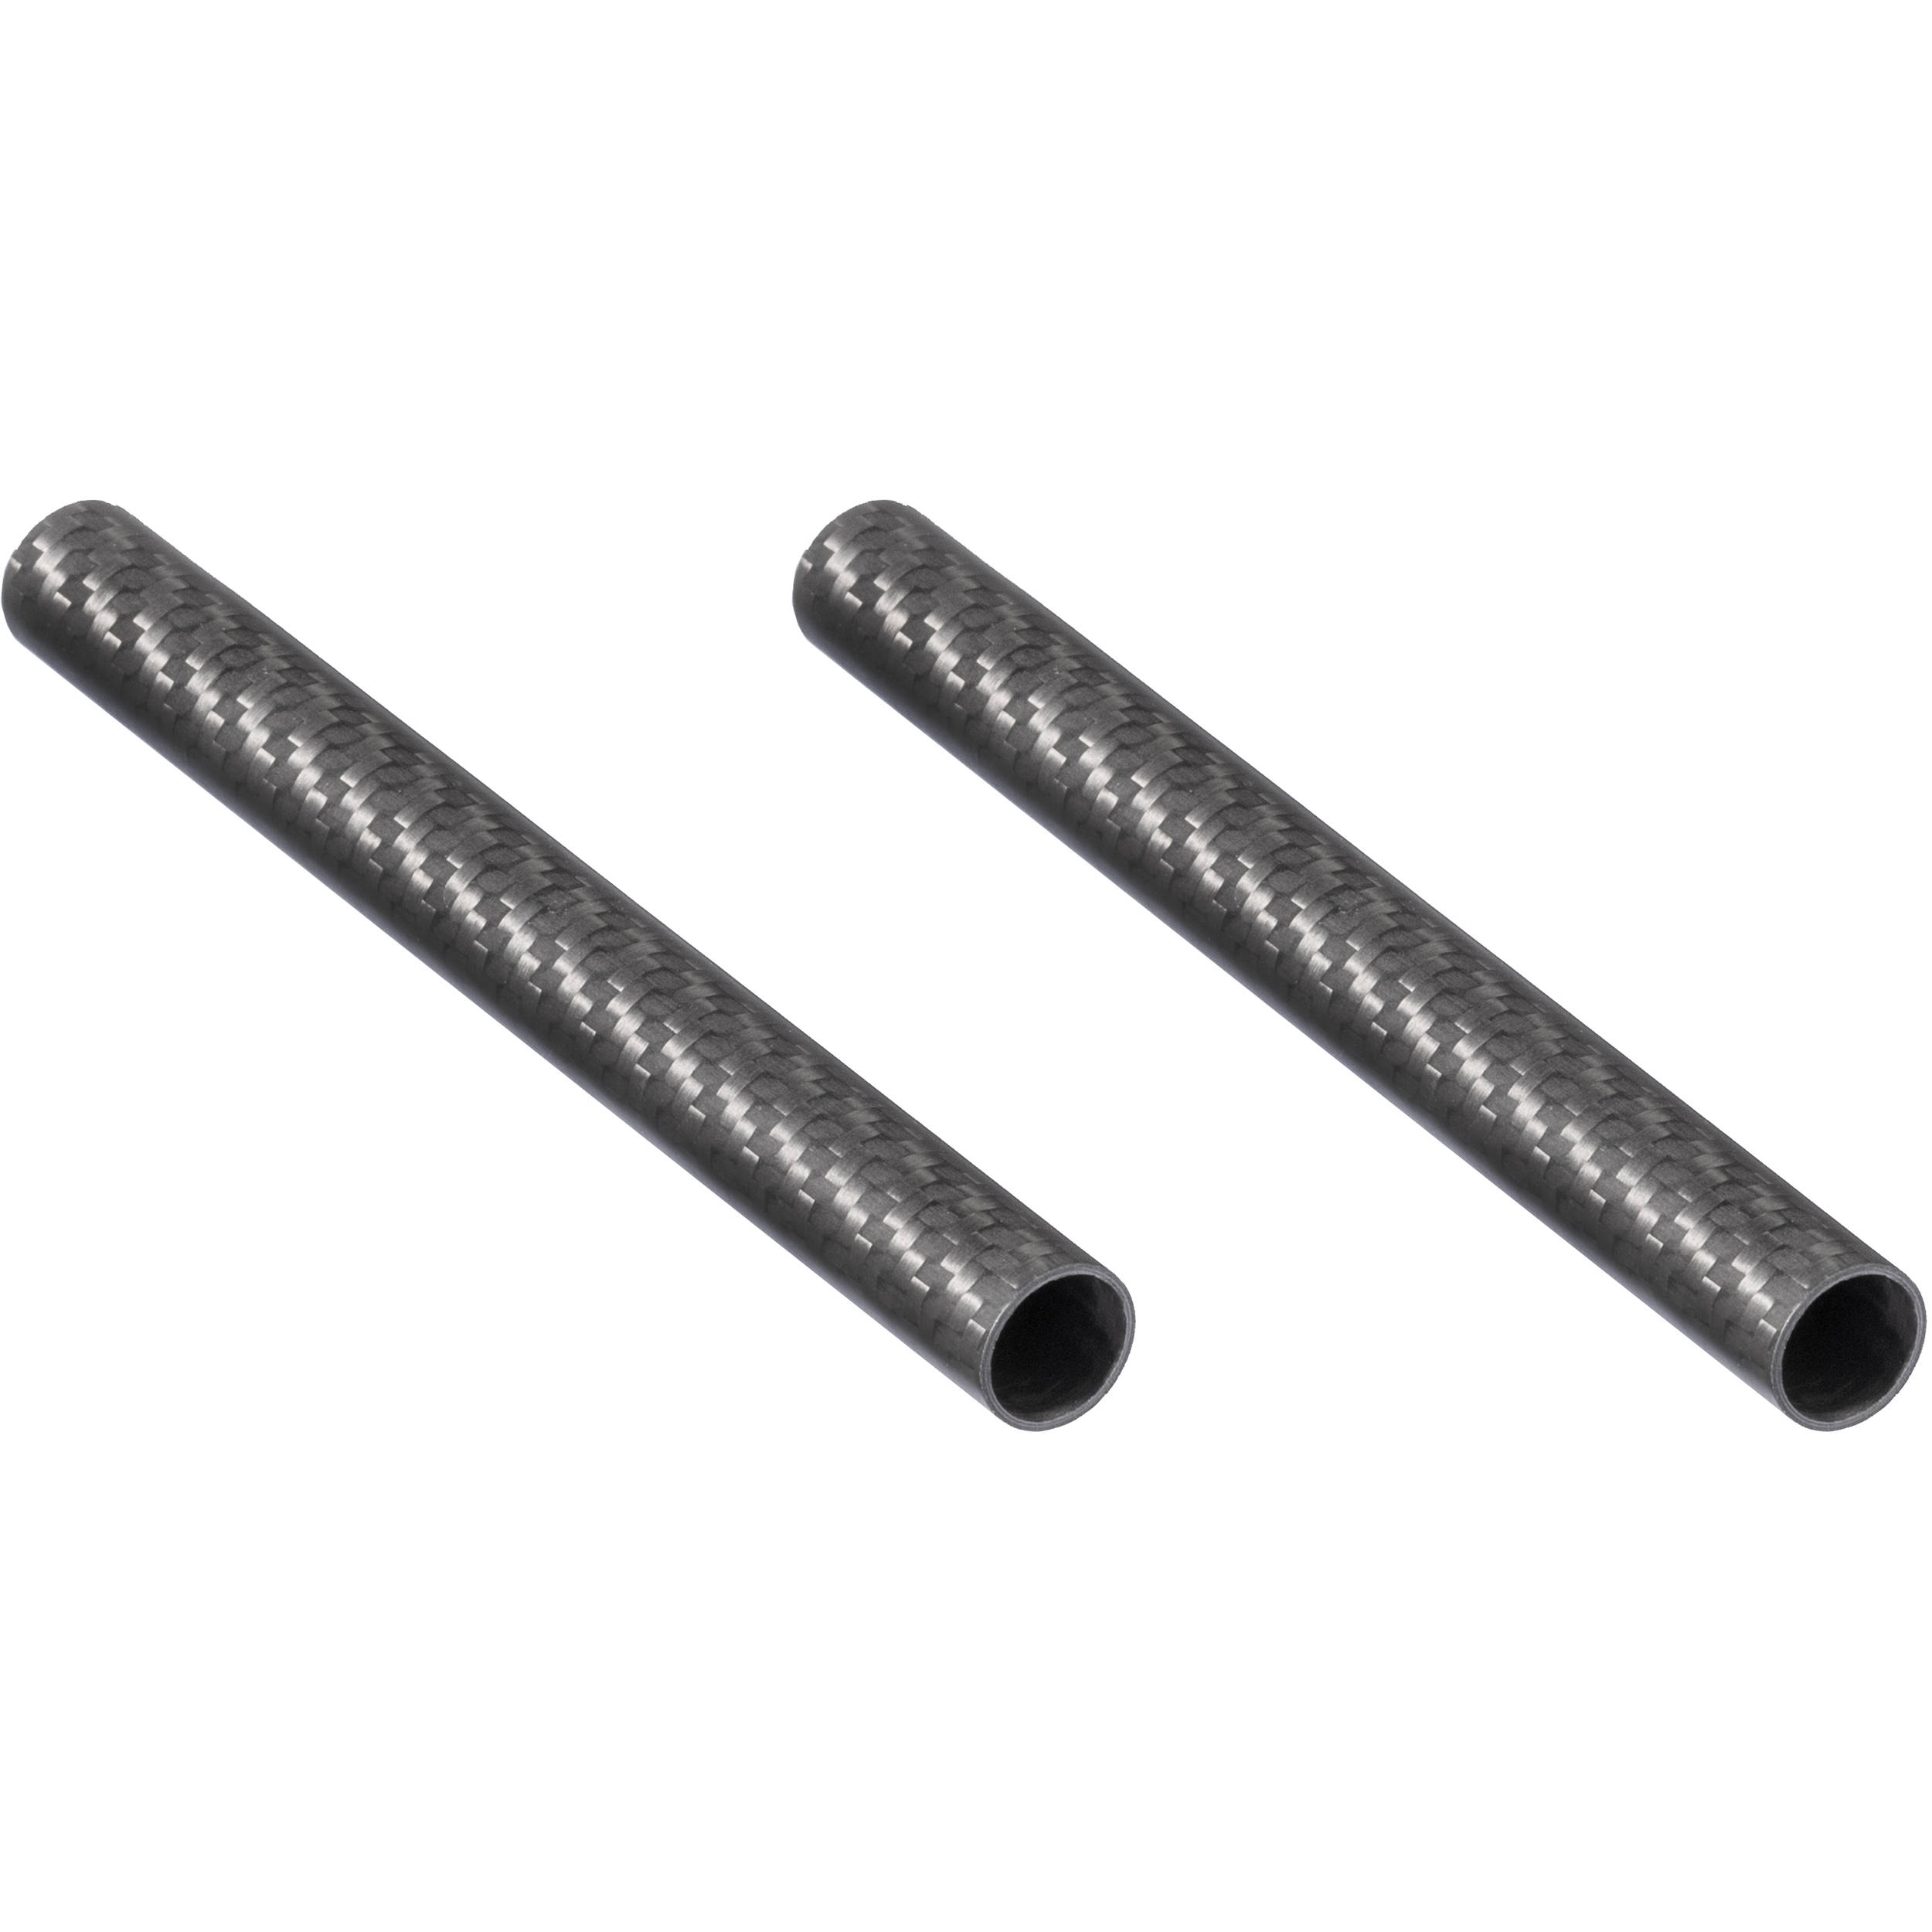 c818eca723c11 Axler 15mm Carbon Fiber Rod Set (6